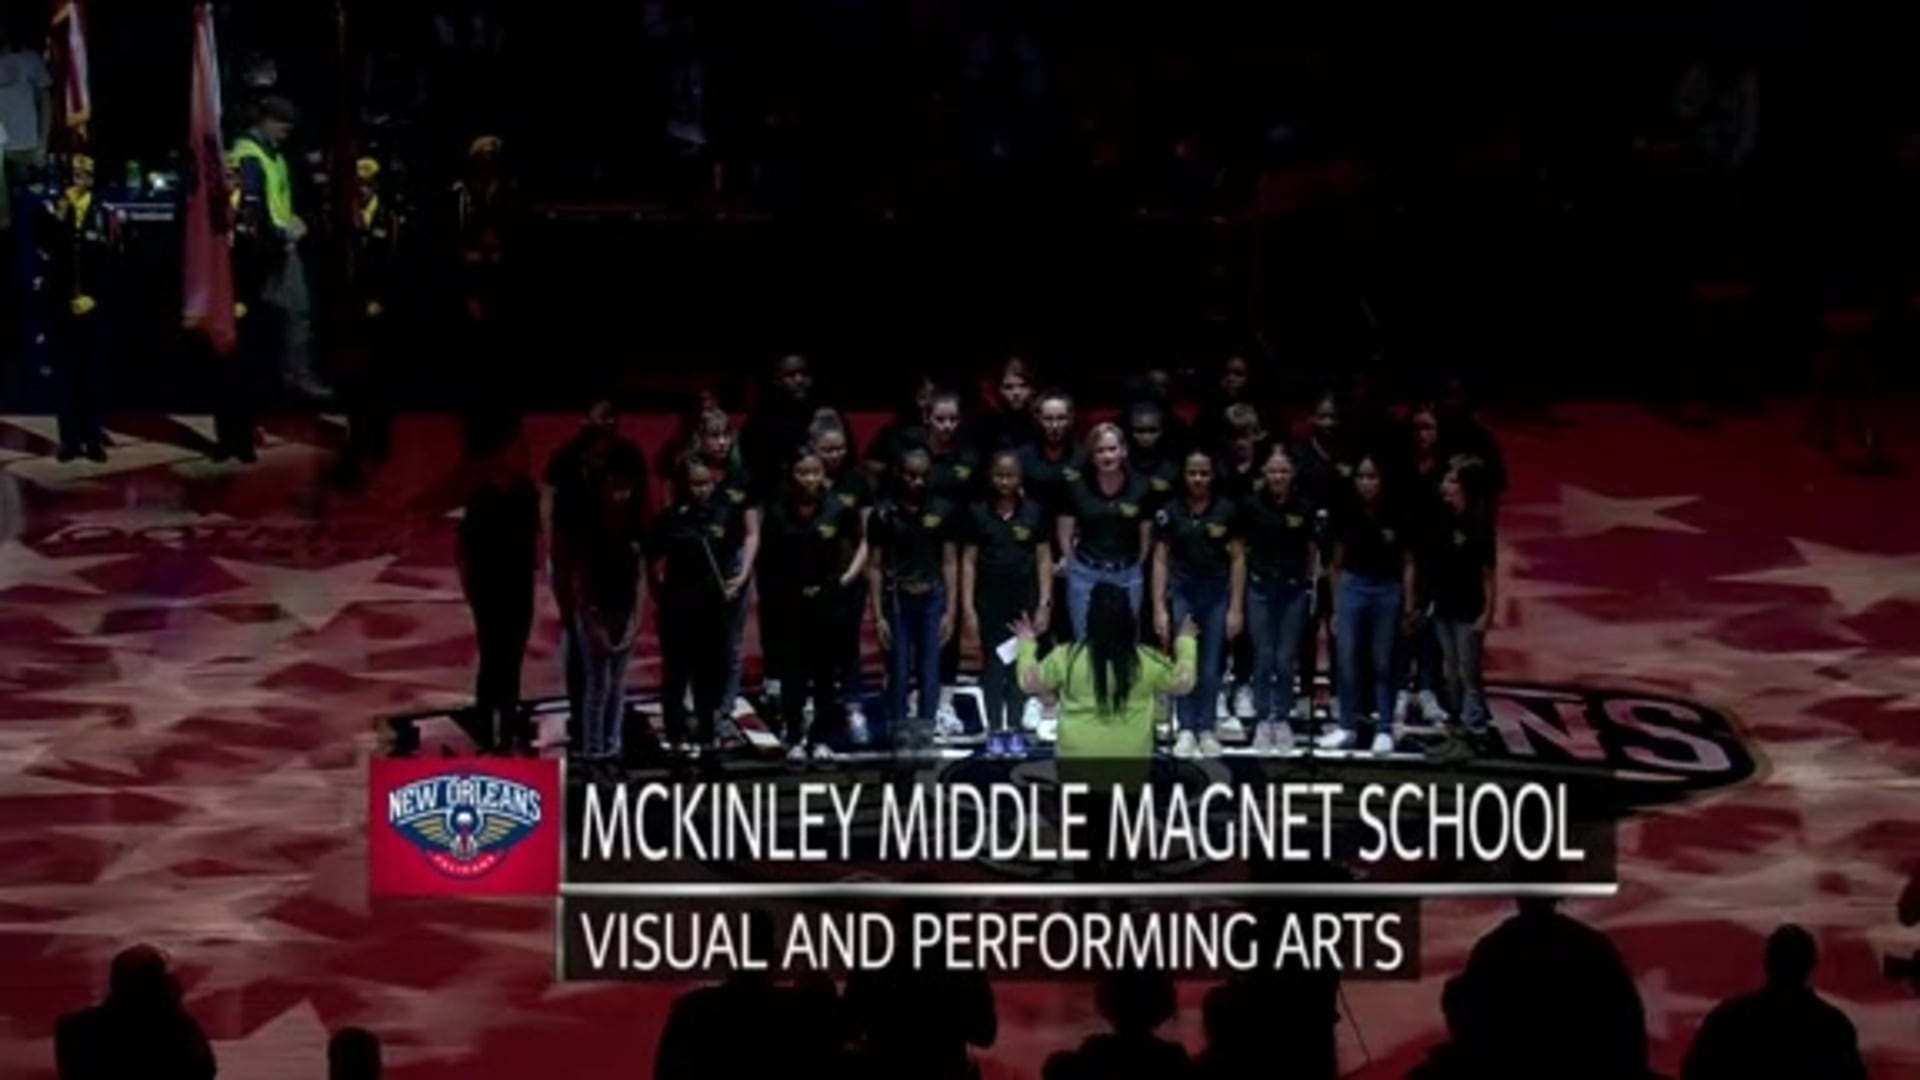 Entertainment: National Anthem performance by McKinley Middle Magnet School – February 28 vs. Cleveland Cavaliers